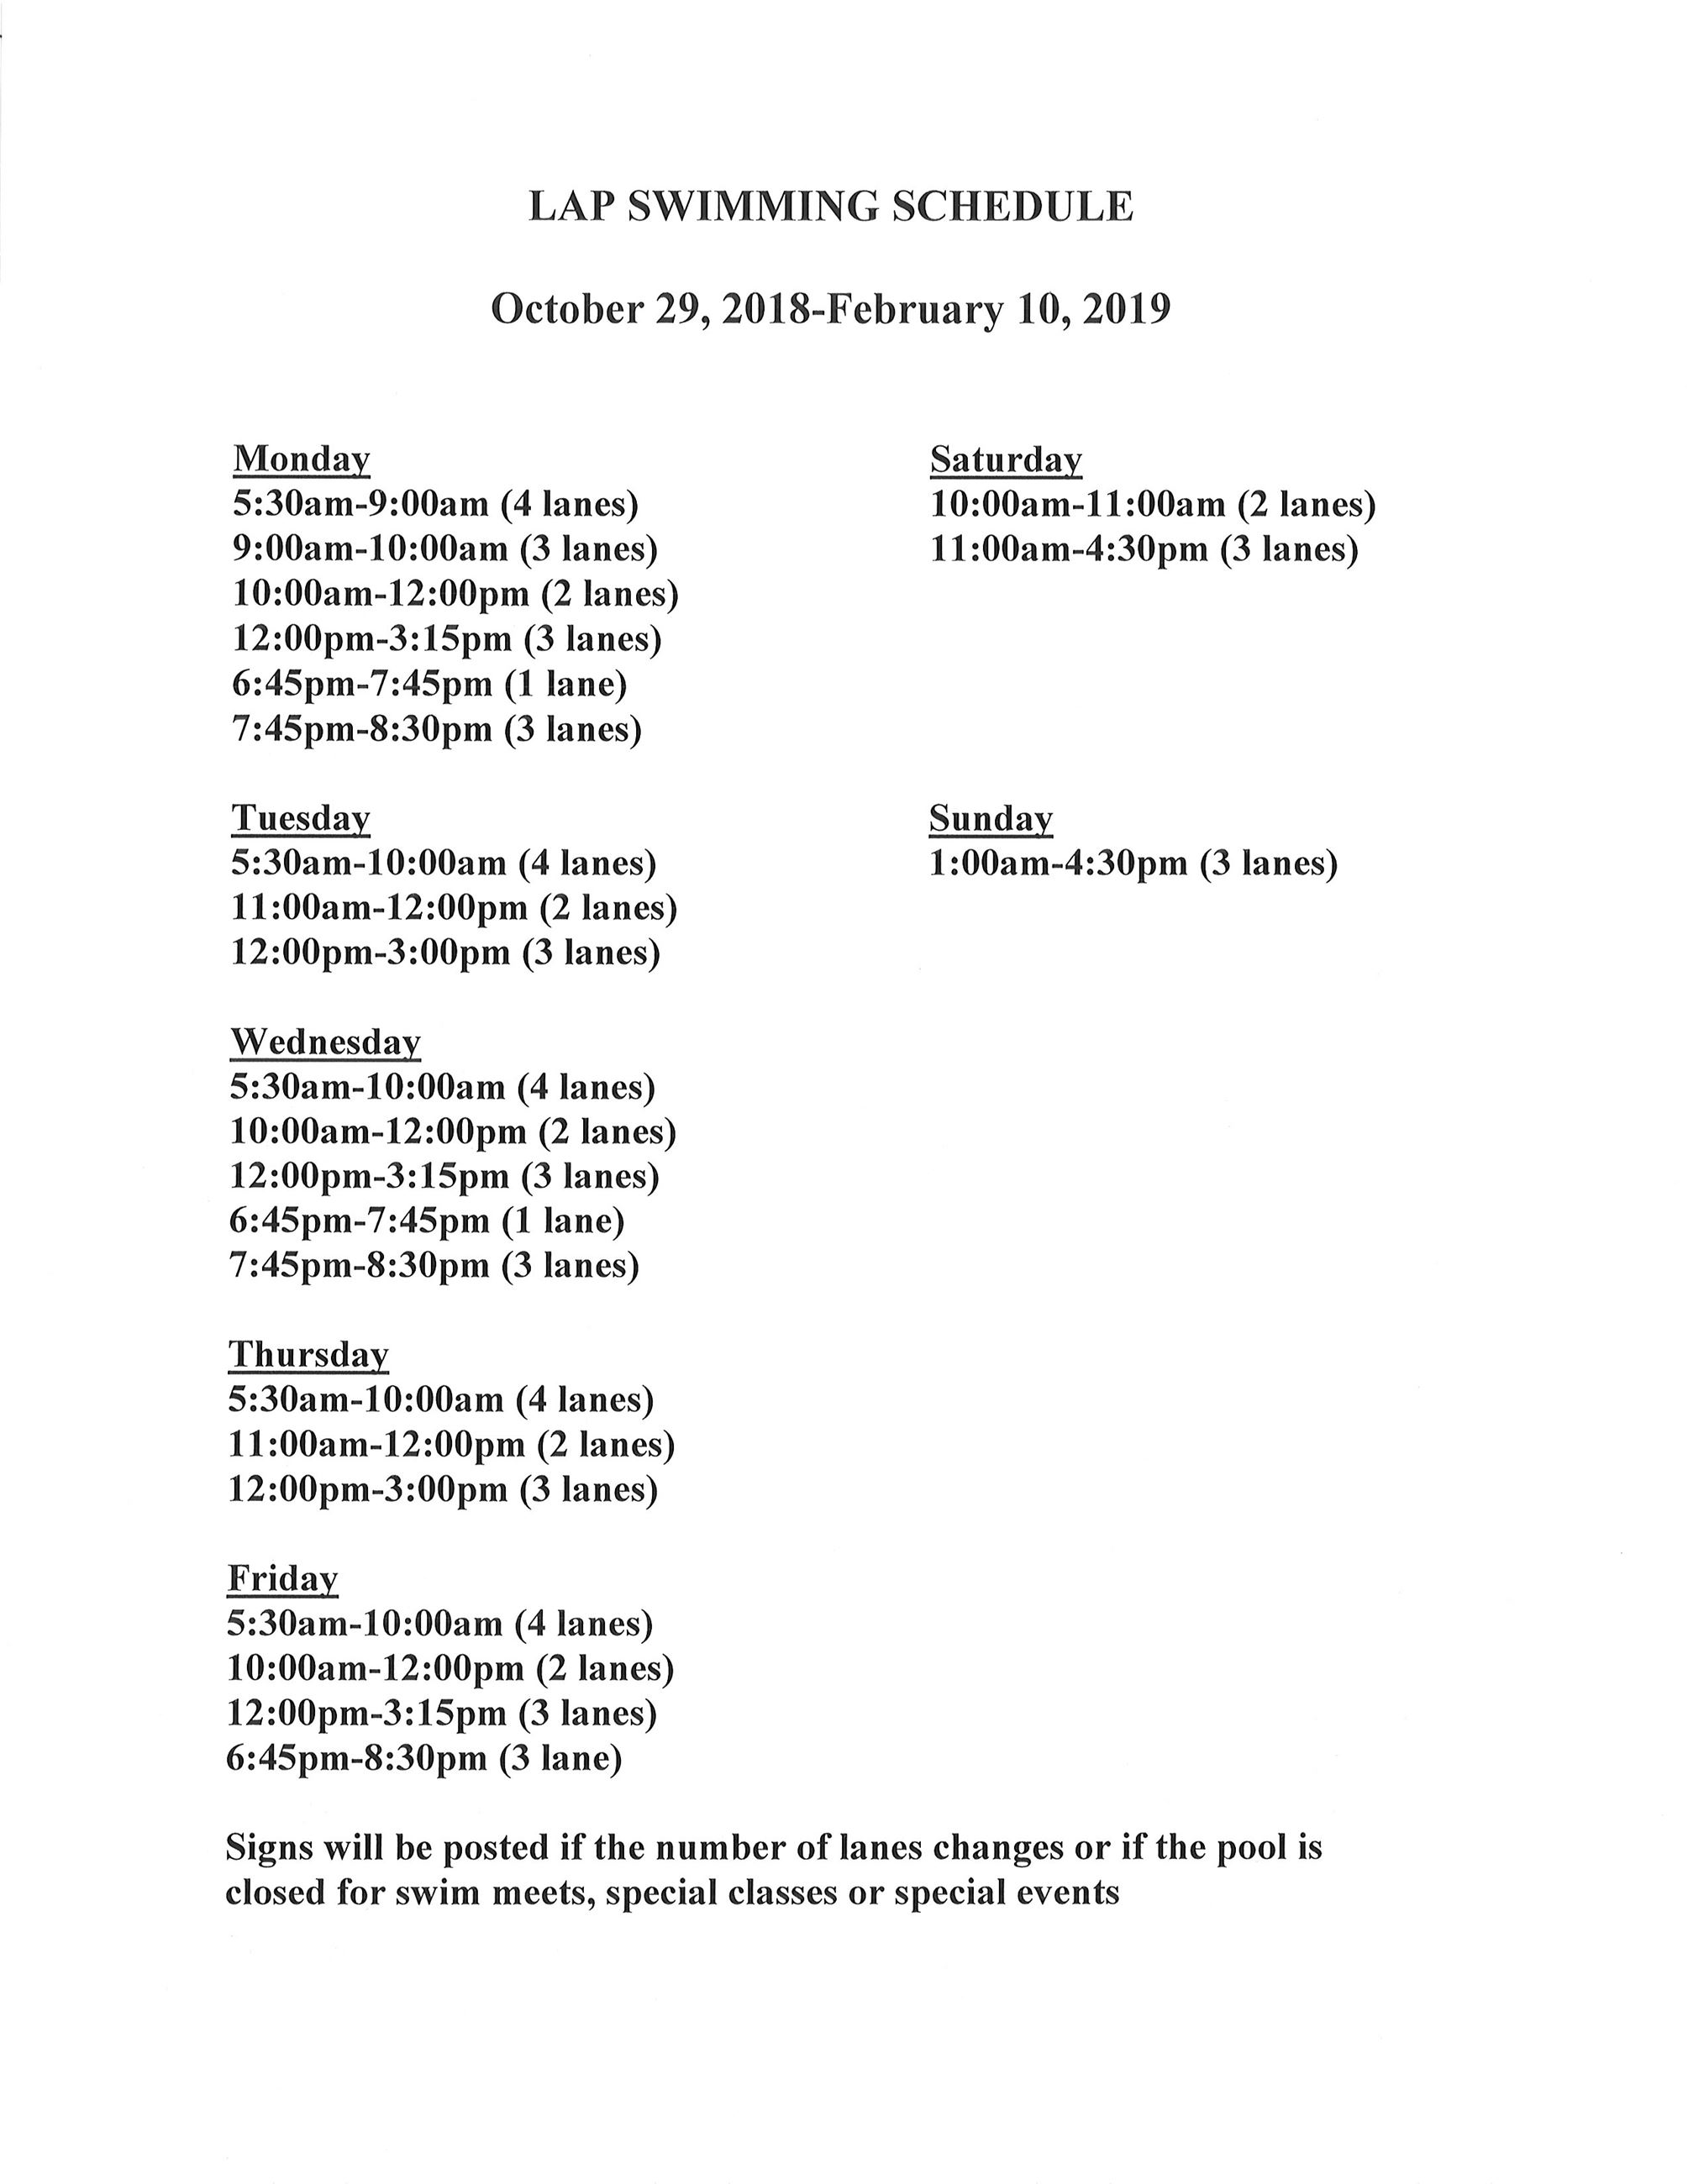 Winter 2018-19 Lap Swim Schedule